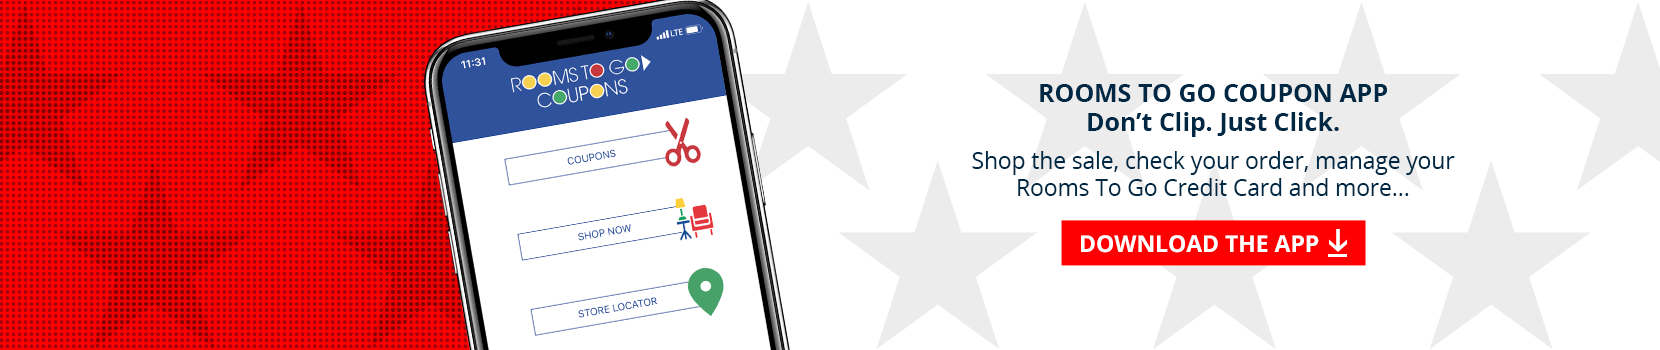 Rooms To Go Coupon App. Don't clip. just click. shop the sale, check your order, manage your Rooms To Go credit card and more... download the app